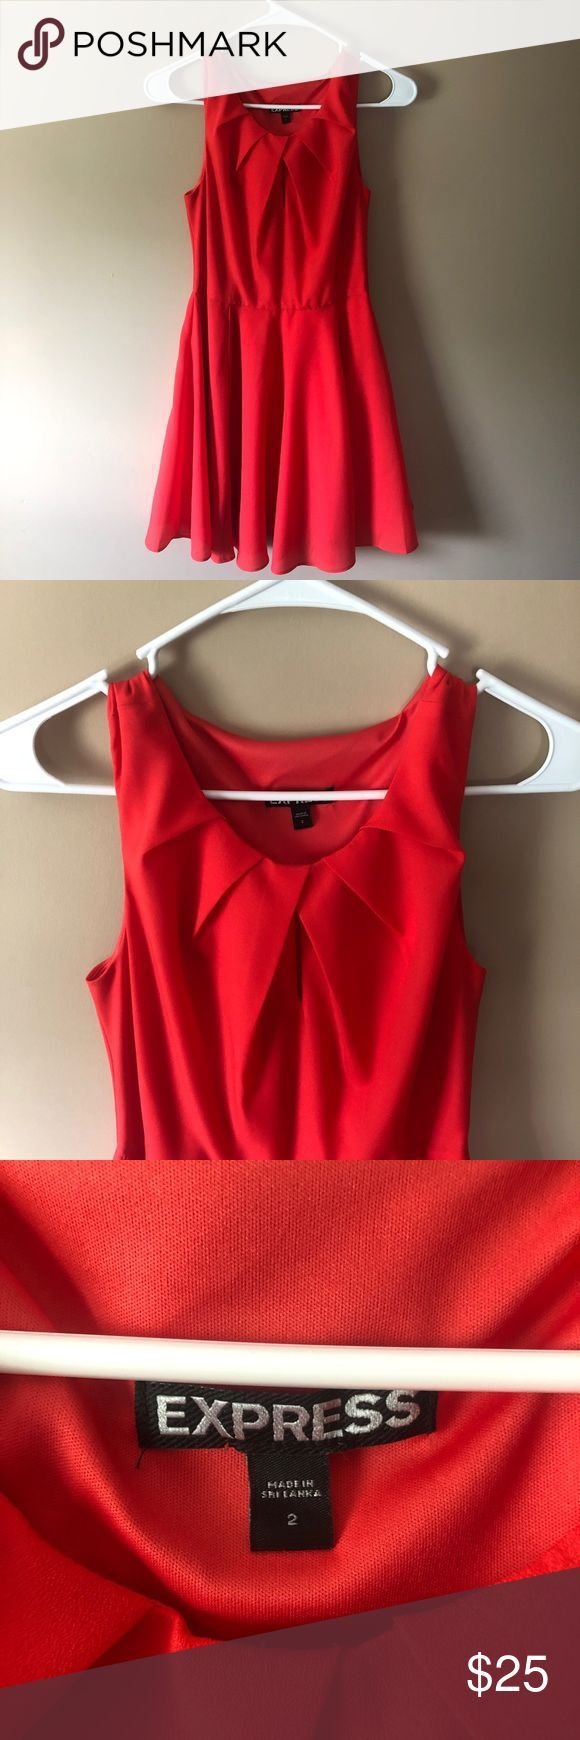 Flirty Red Cocktail Dress This flirty red cocktail dress from Express was a favo…